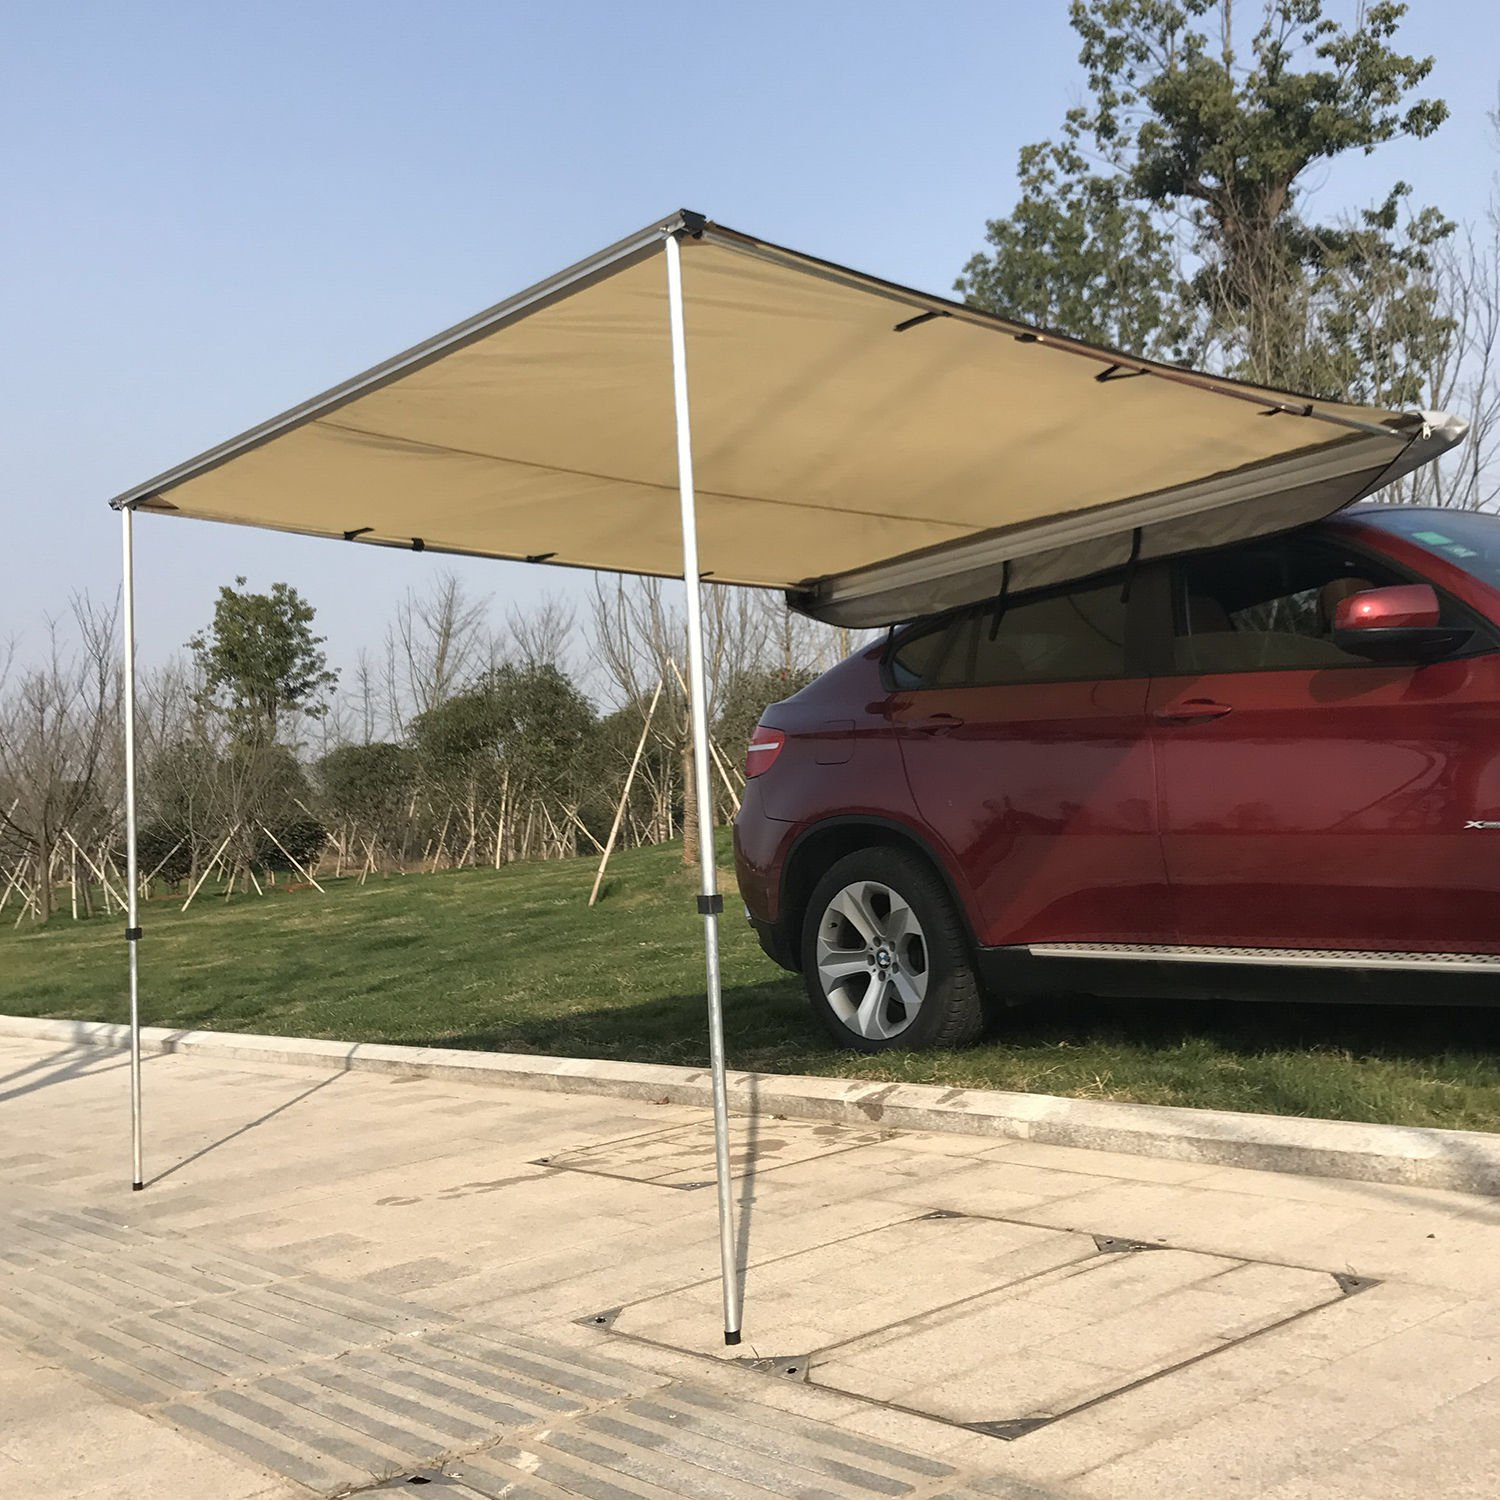 Outsunny Car Awning   Portable Folding Retractable Rooftop Sun Shade  Shelter (Large)